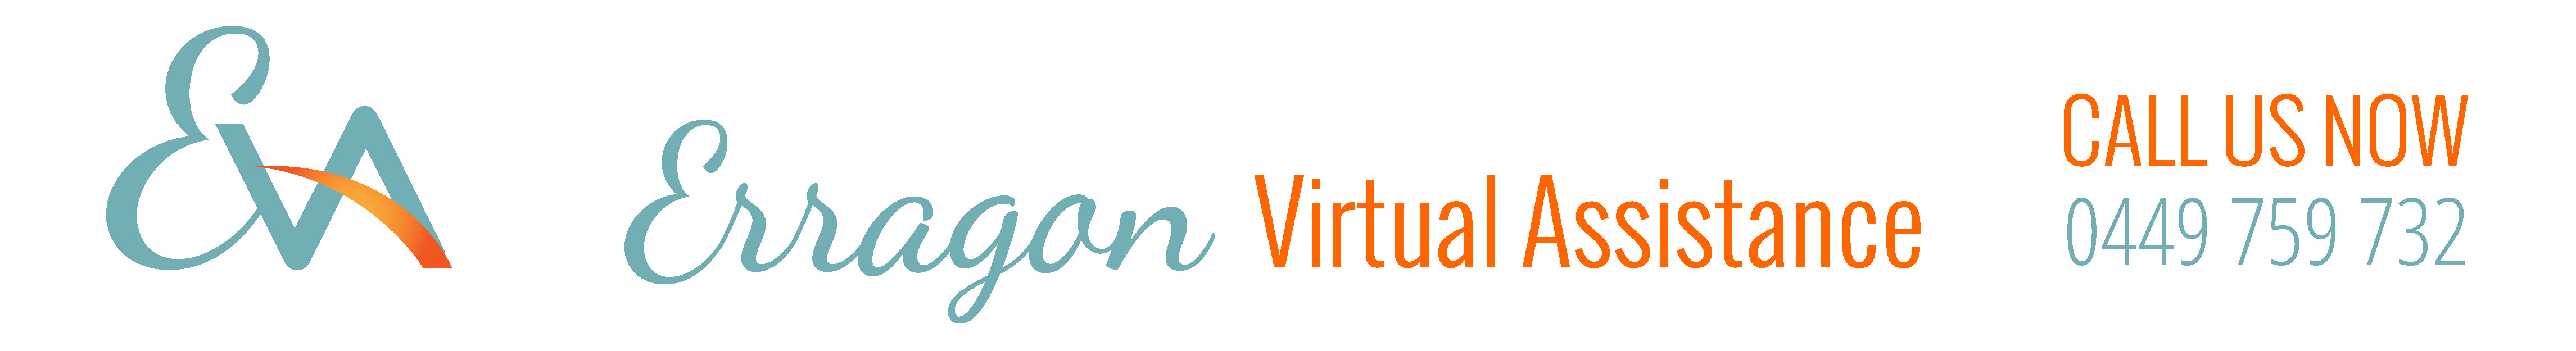 Erragon Virtual Assistance